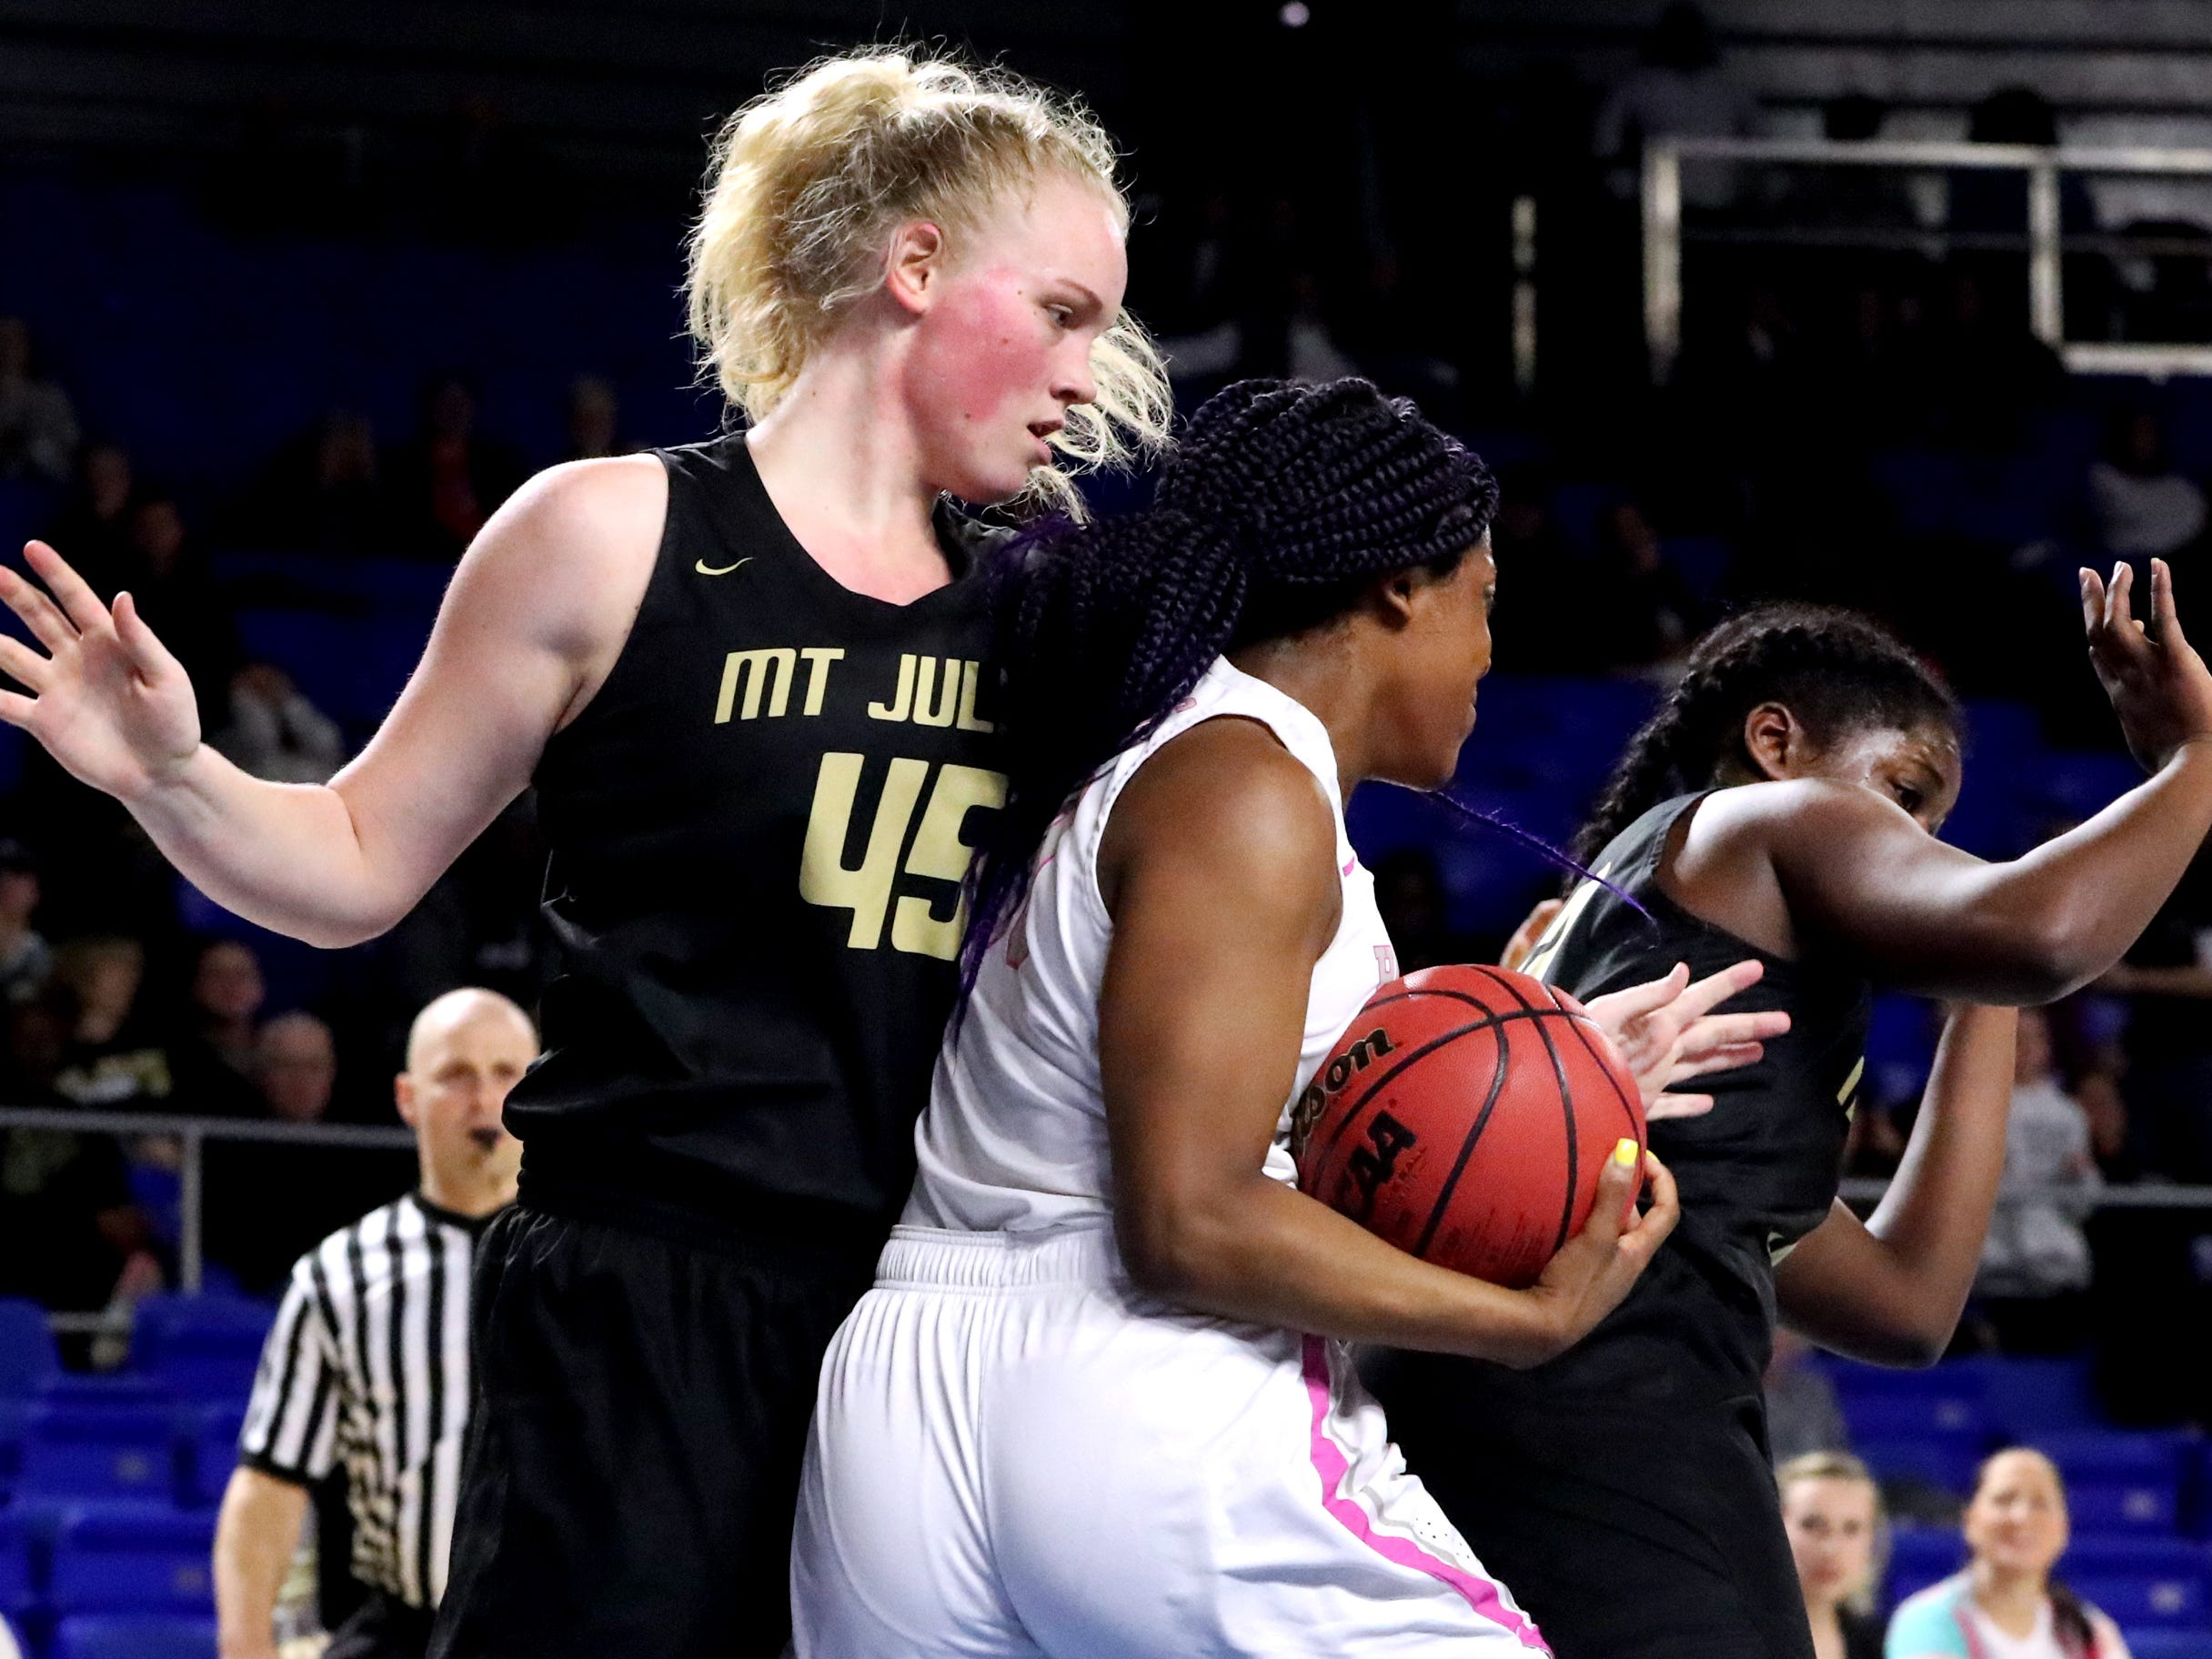 Houston's Jayla Hemingway (00) tries to shake off her defenders Mt. Juliet's Emma Palmer (45) and Reghan Grimes (33) during the quarterfinal round of the TSSAA Div. 1 Class AAA Girls State Tournament, on Wednesday, March 6, 2019, at Murphy Center in Murfreesboro, Tenn.